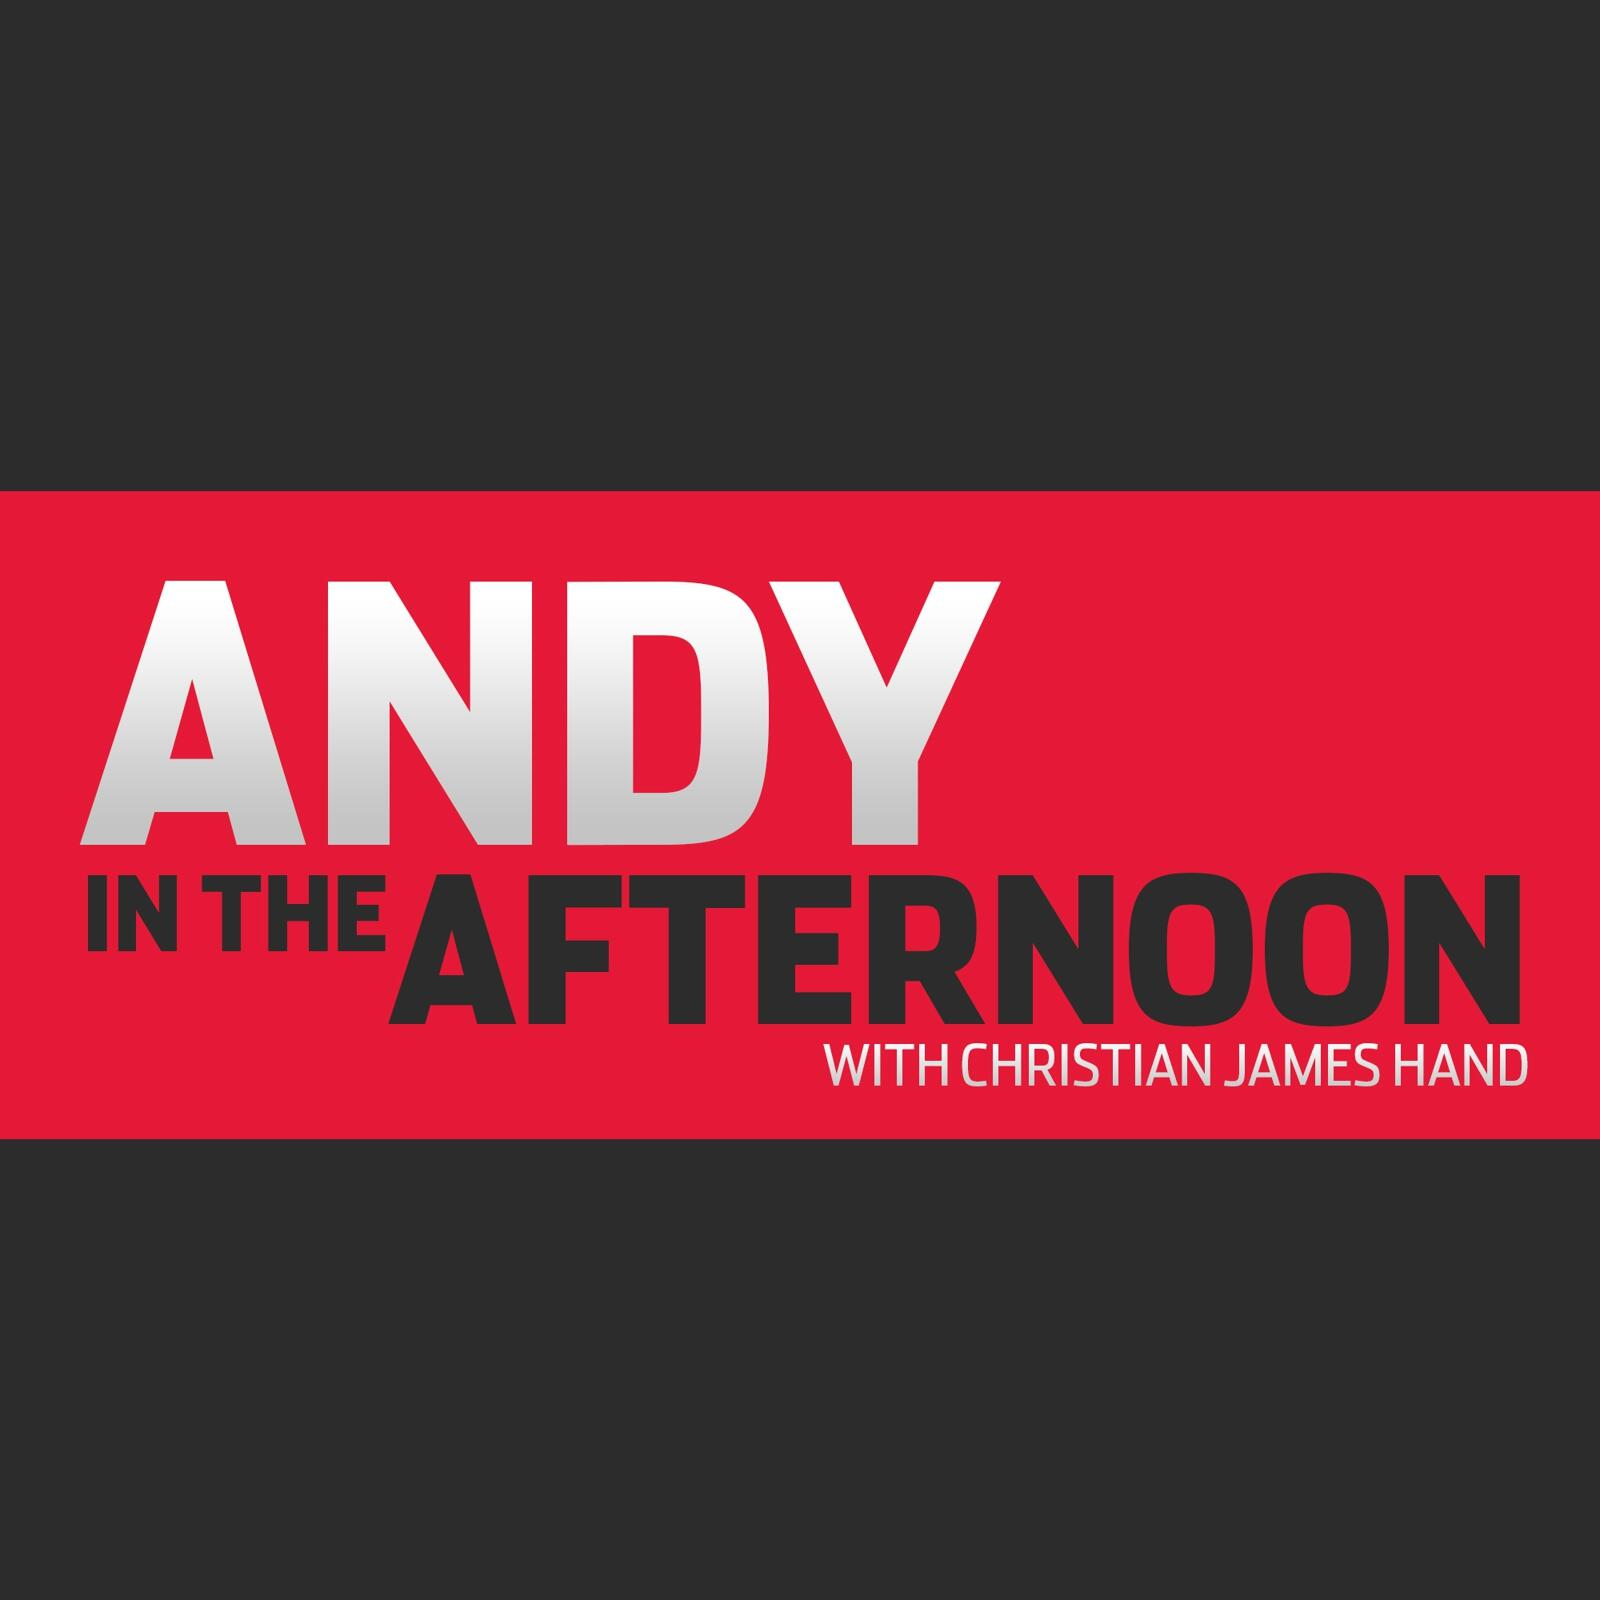 Andy in the Afternoon